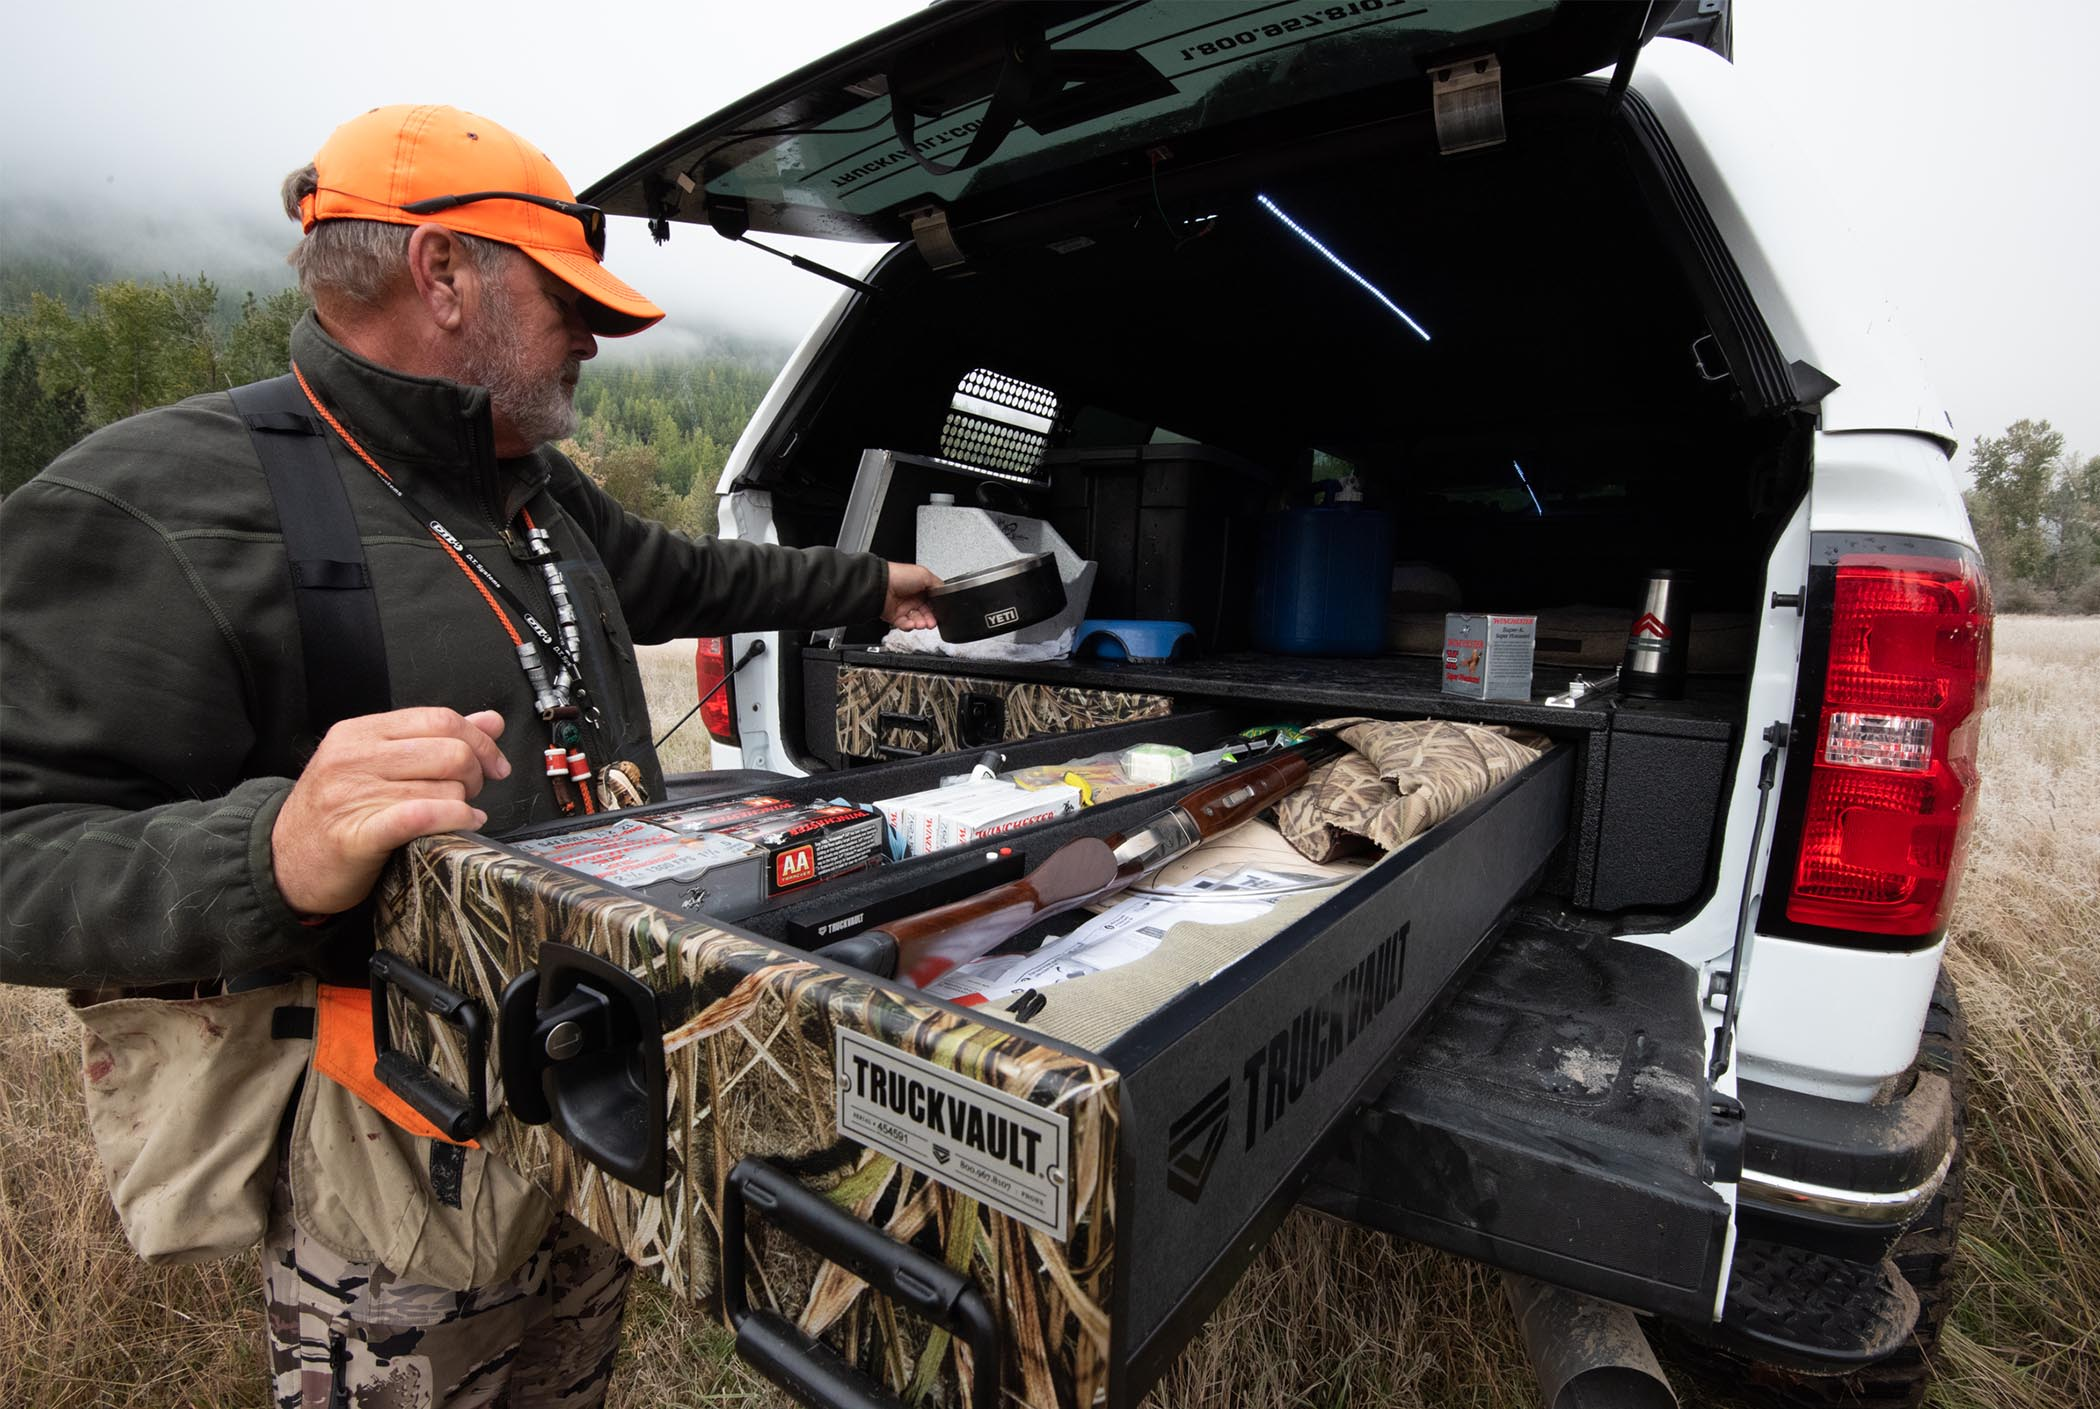 A pheasant hunter opening a TruckVault with a shotgun secured in the drawer.